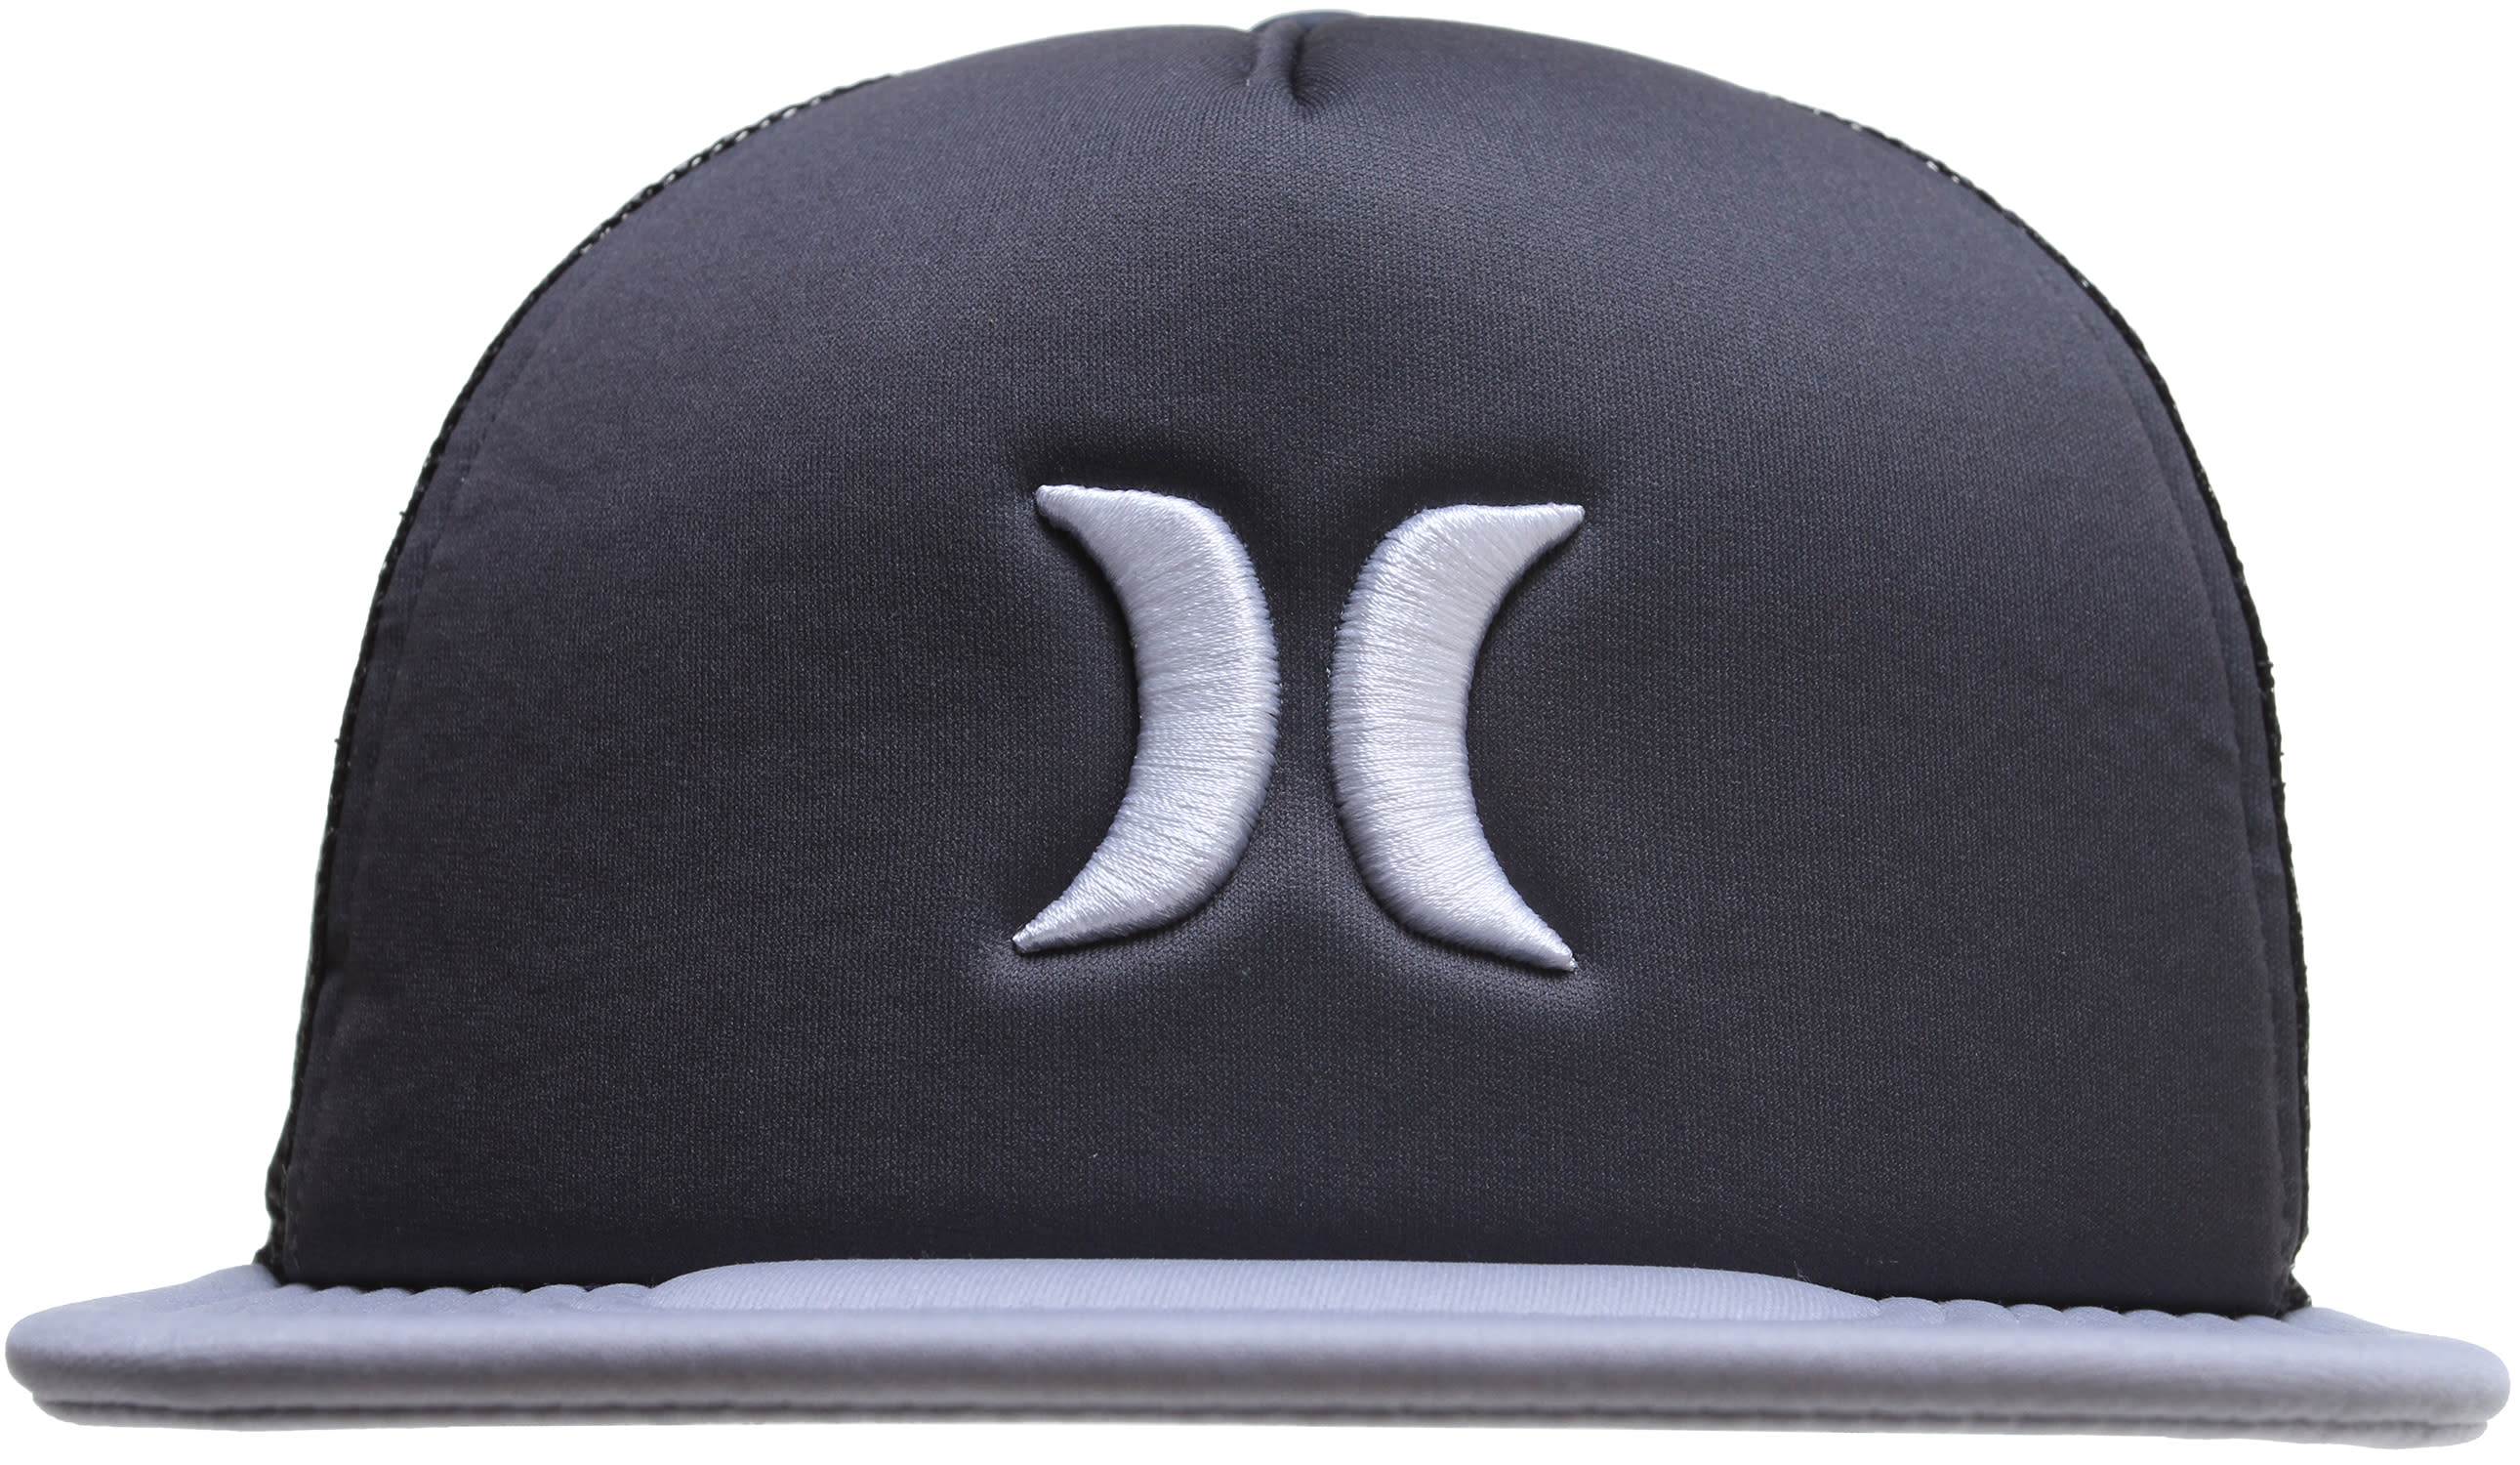 Hurley Blocked Trucker Cap - thumbnail 1 3931071f251e